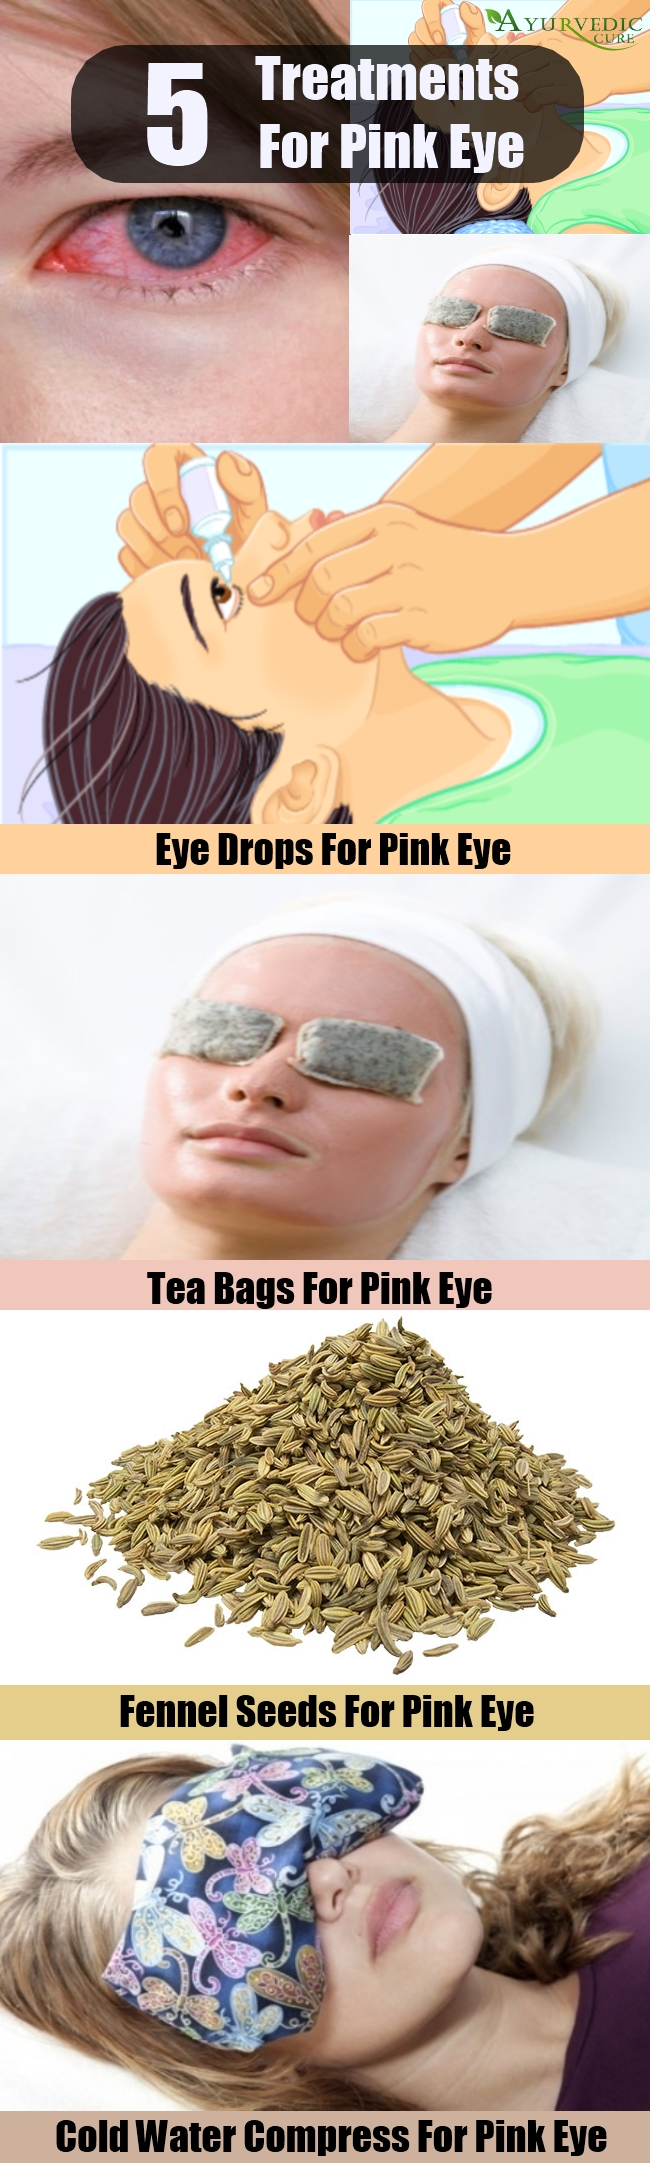 Different Treatments For Pink Eye  How To Treat Pink Eye. Colorado Vacation Packages Summer. Applied Science University Pa Review Course. Build A Ecommerce Website Free. Epoxy Flooring Companies Phoenix Solar Energy. Are Annuities A Good Investment For Retirement. Pc Repair Training Courses Sony India Serials. What Does The Pancreas Do In The Digestive System. Small Sports Cars For Sale Heart Lung Machine